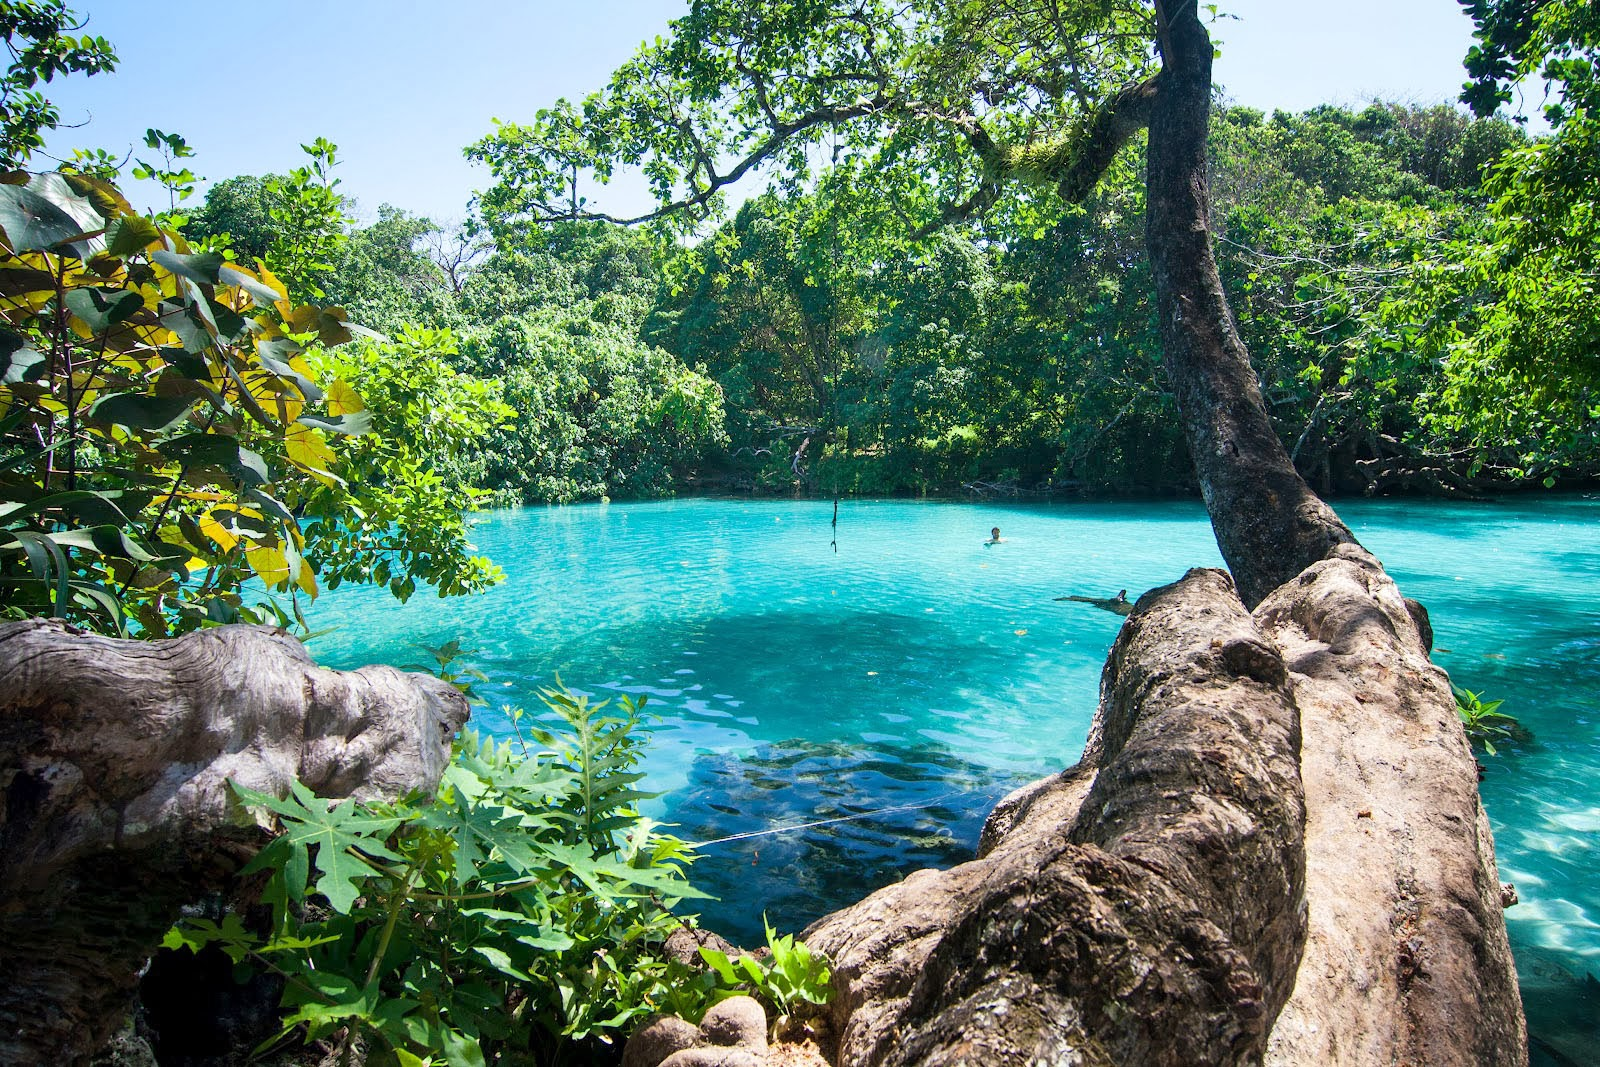 jamaica place places visit most lagoon travel vacation vacations beauty tourist traveling jamacia beach